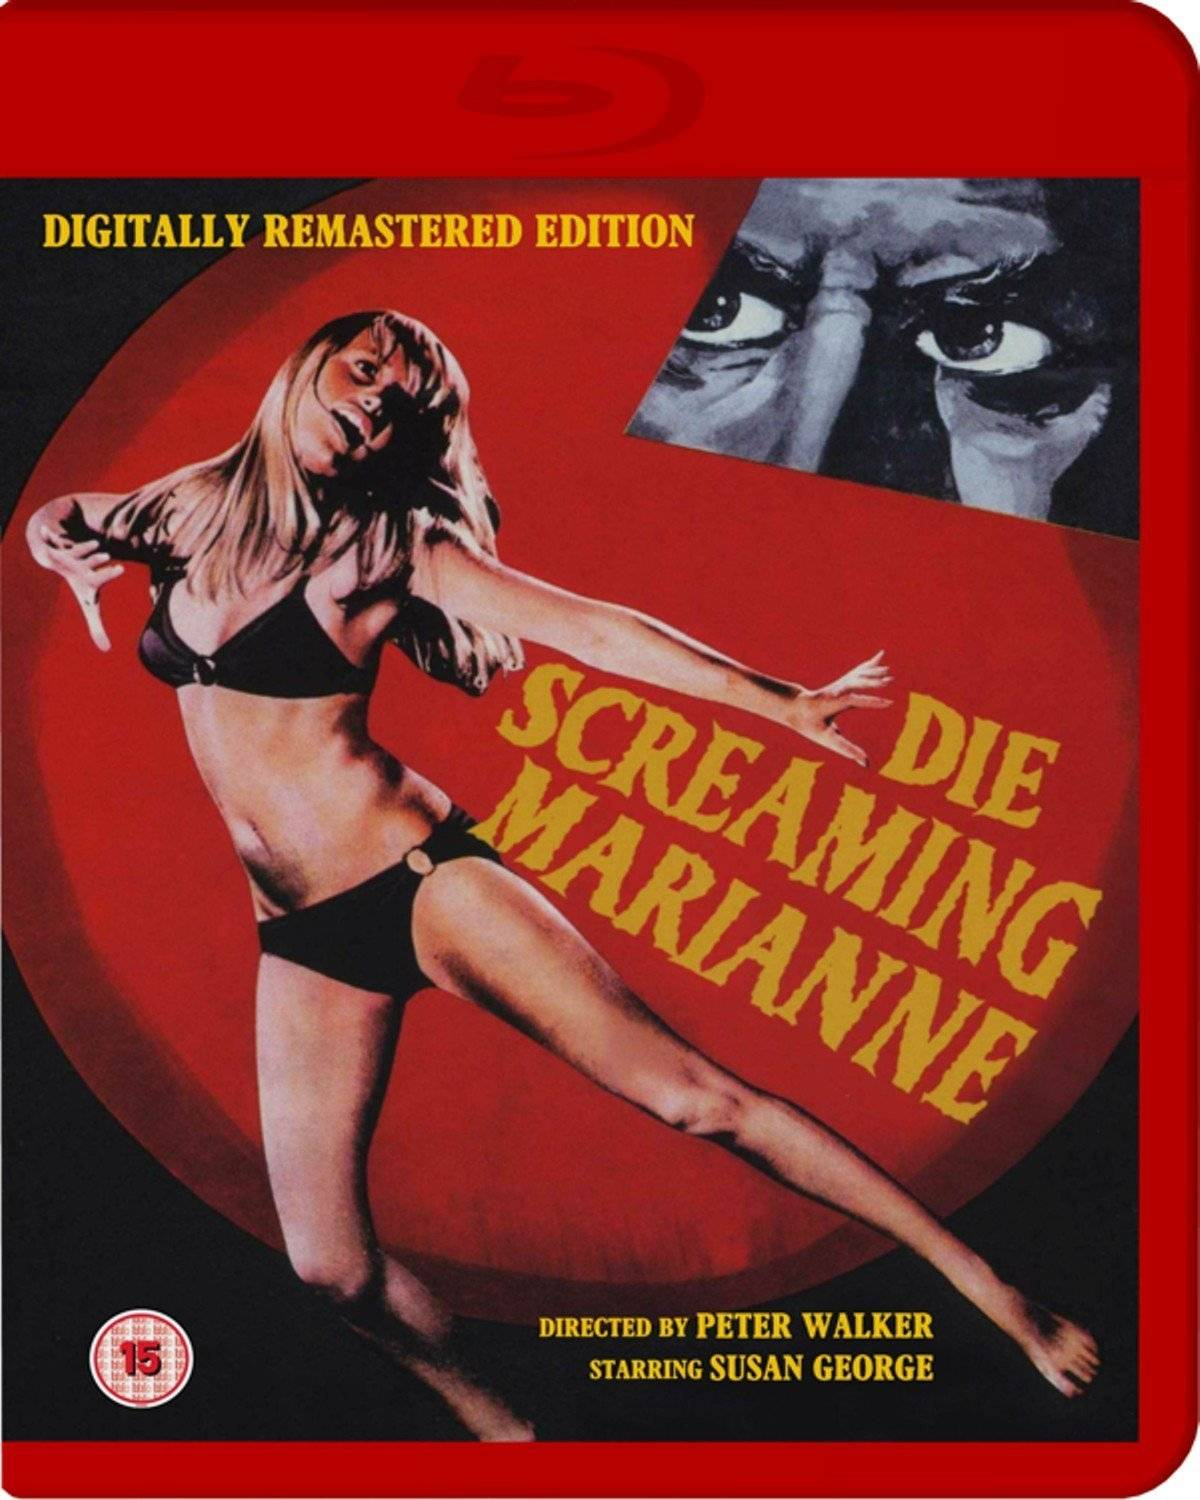 Die Screaming Marianne (1971)